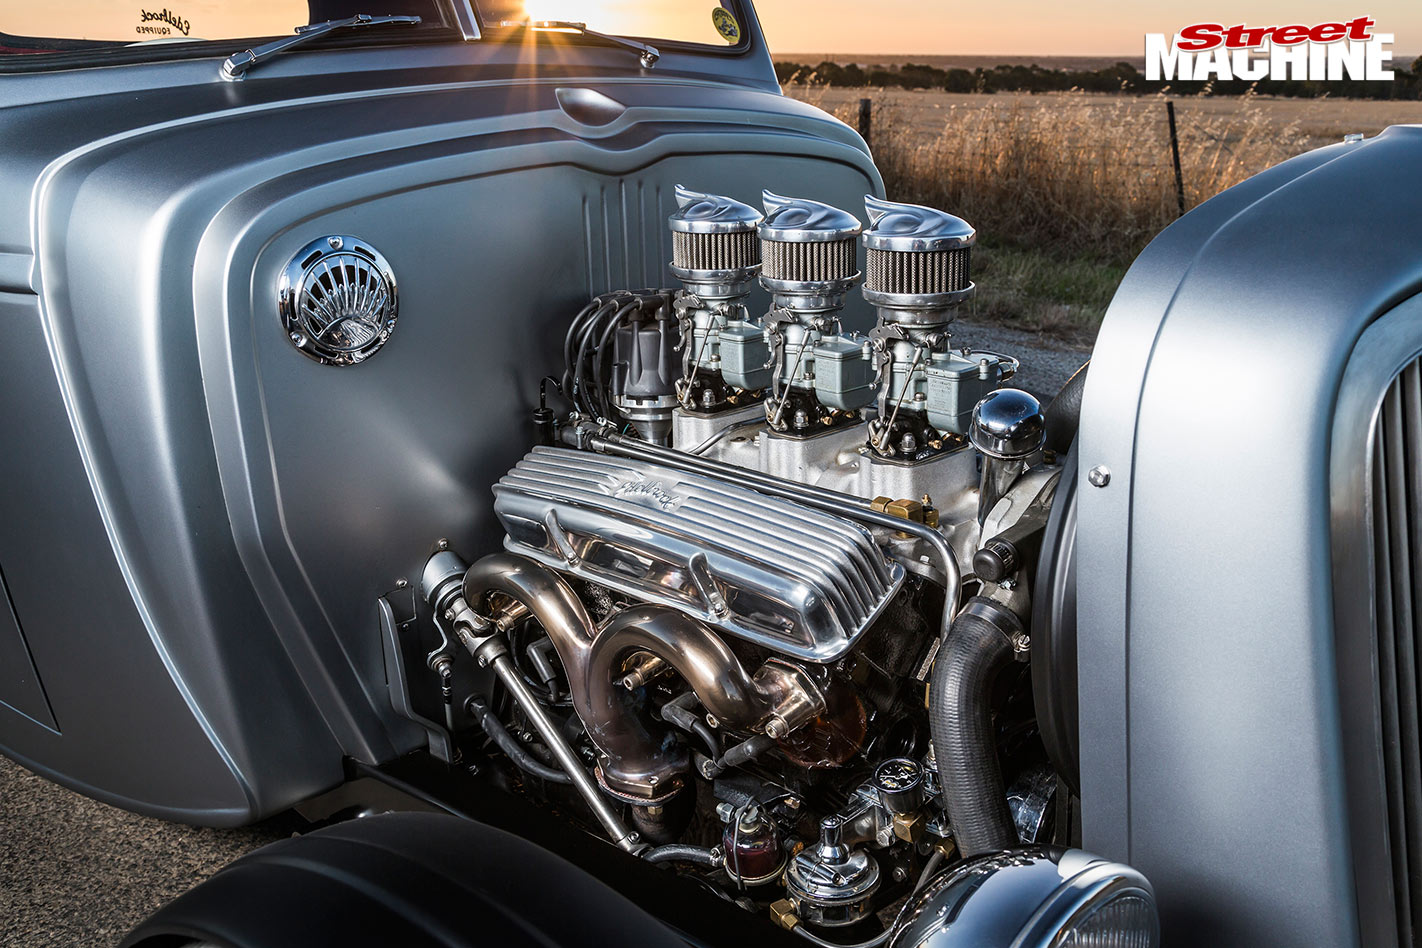 Chev pick-up engine